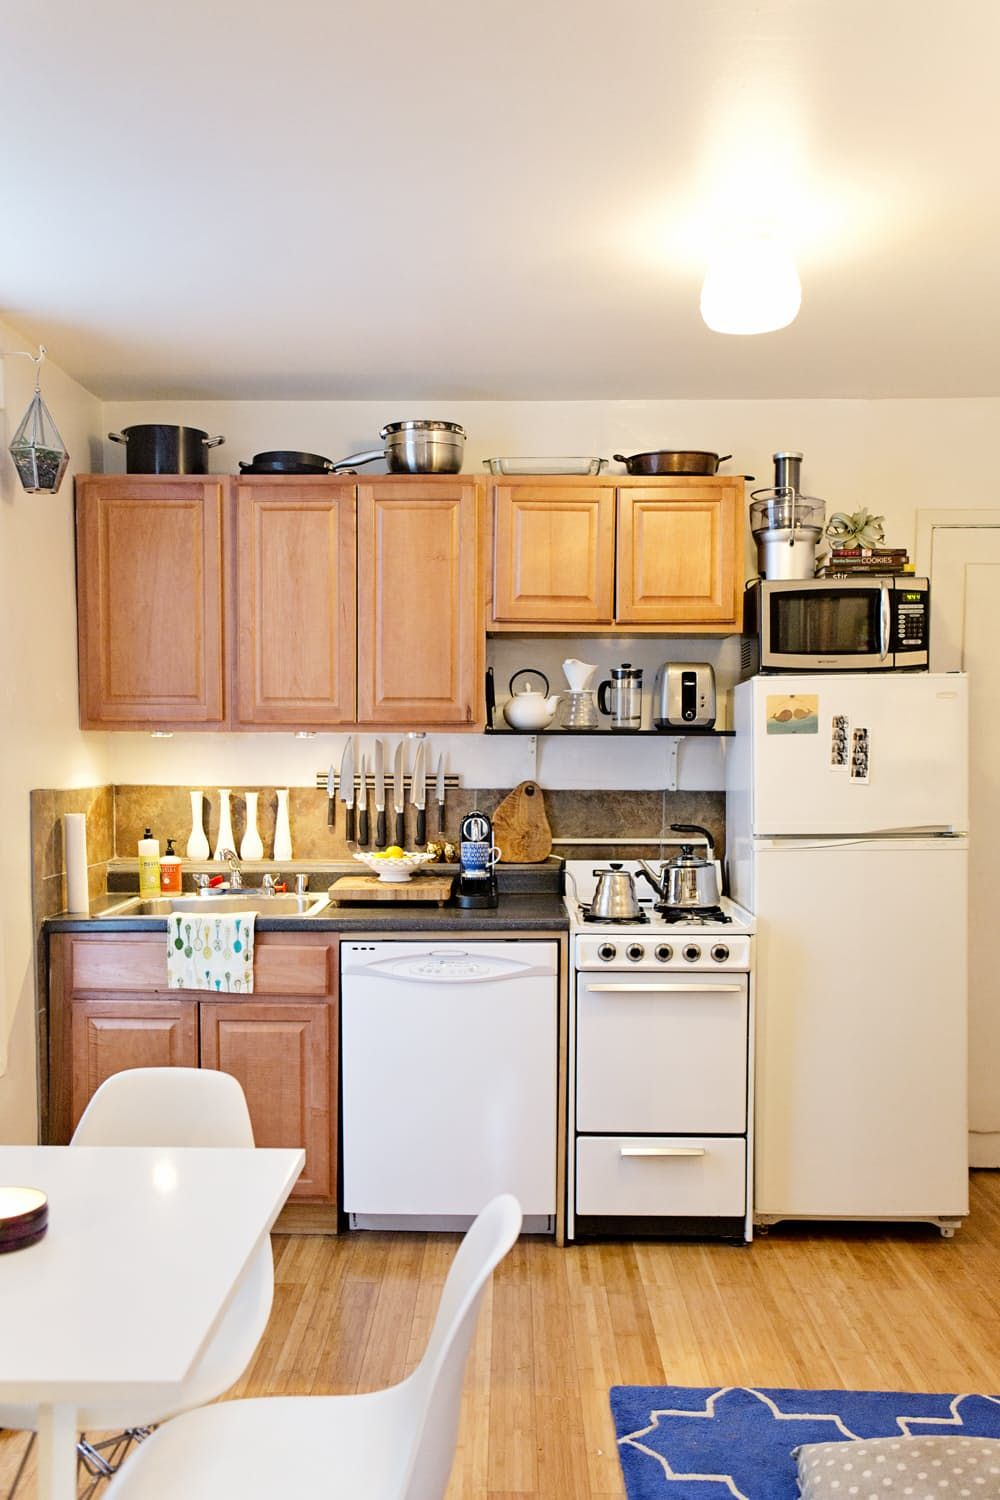 Small Apartment Kitchen Organization The 10 Commandments Of Keeping A Small Space Organized  From The